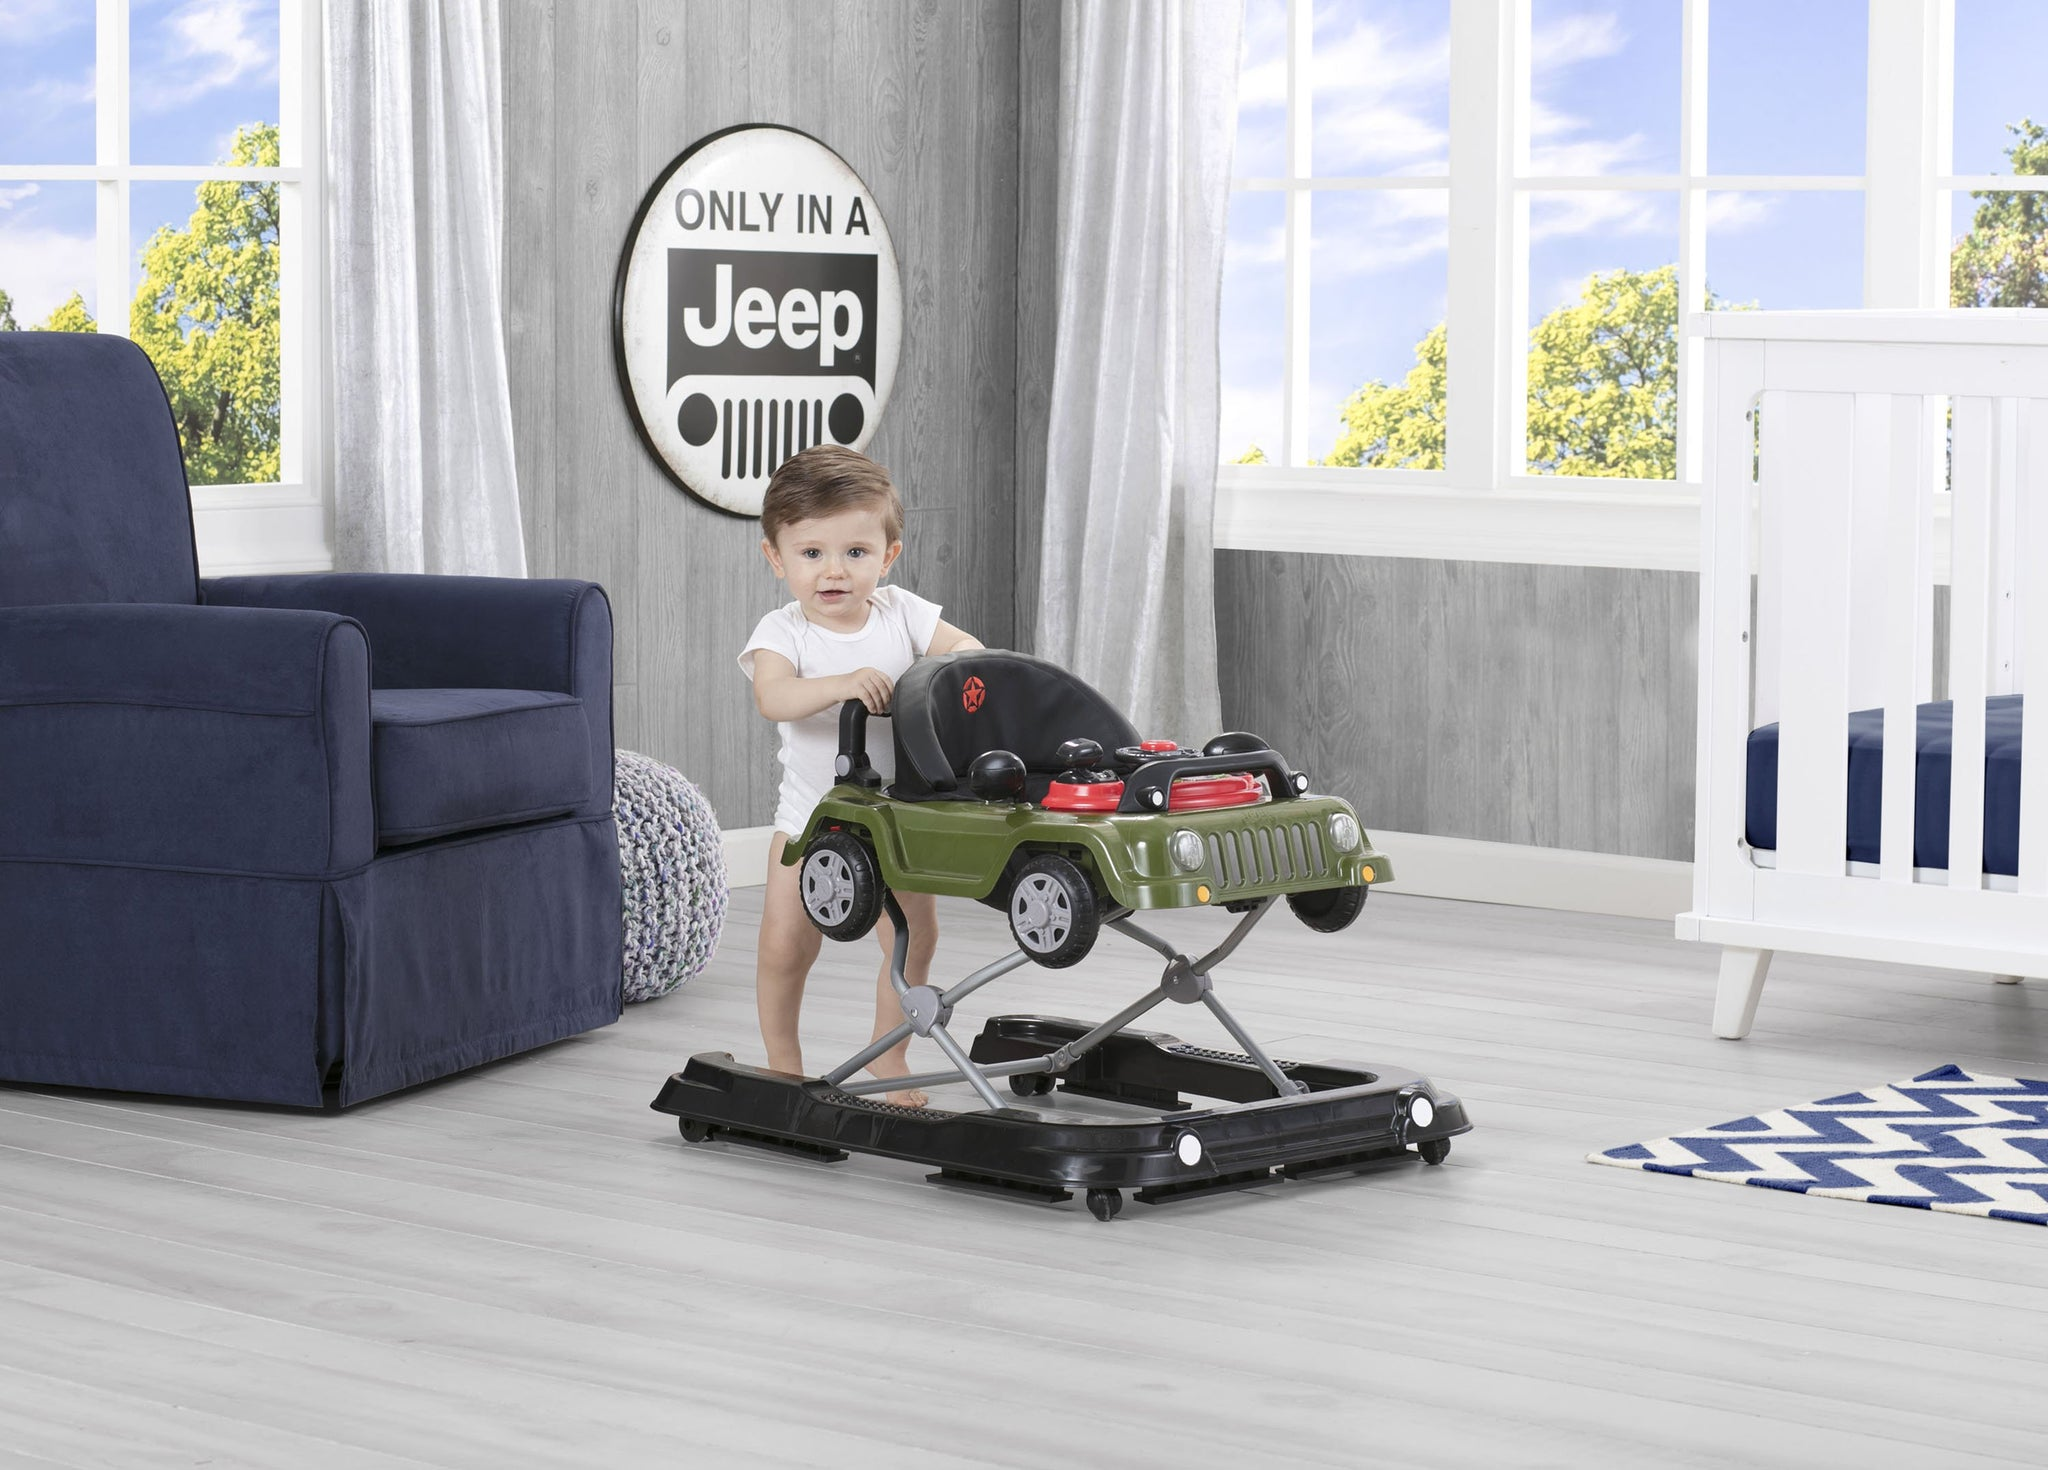 J is for Jeep Anniversary Green (348) Classic Wrangler 3-in-1 Activity Walker (22408), Hangtag with baby standing, a2a